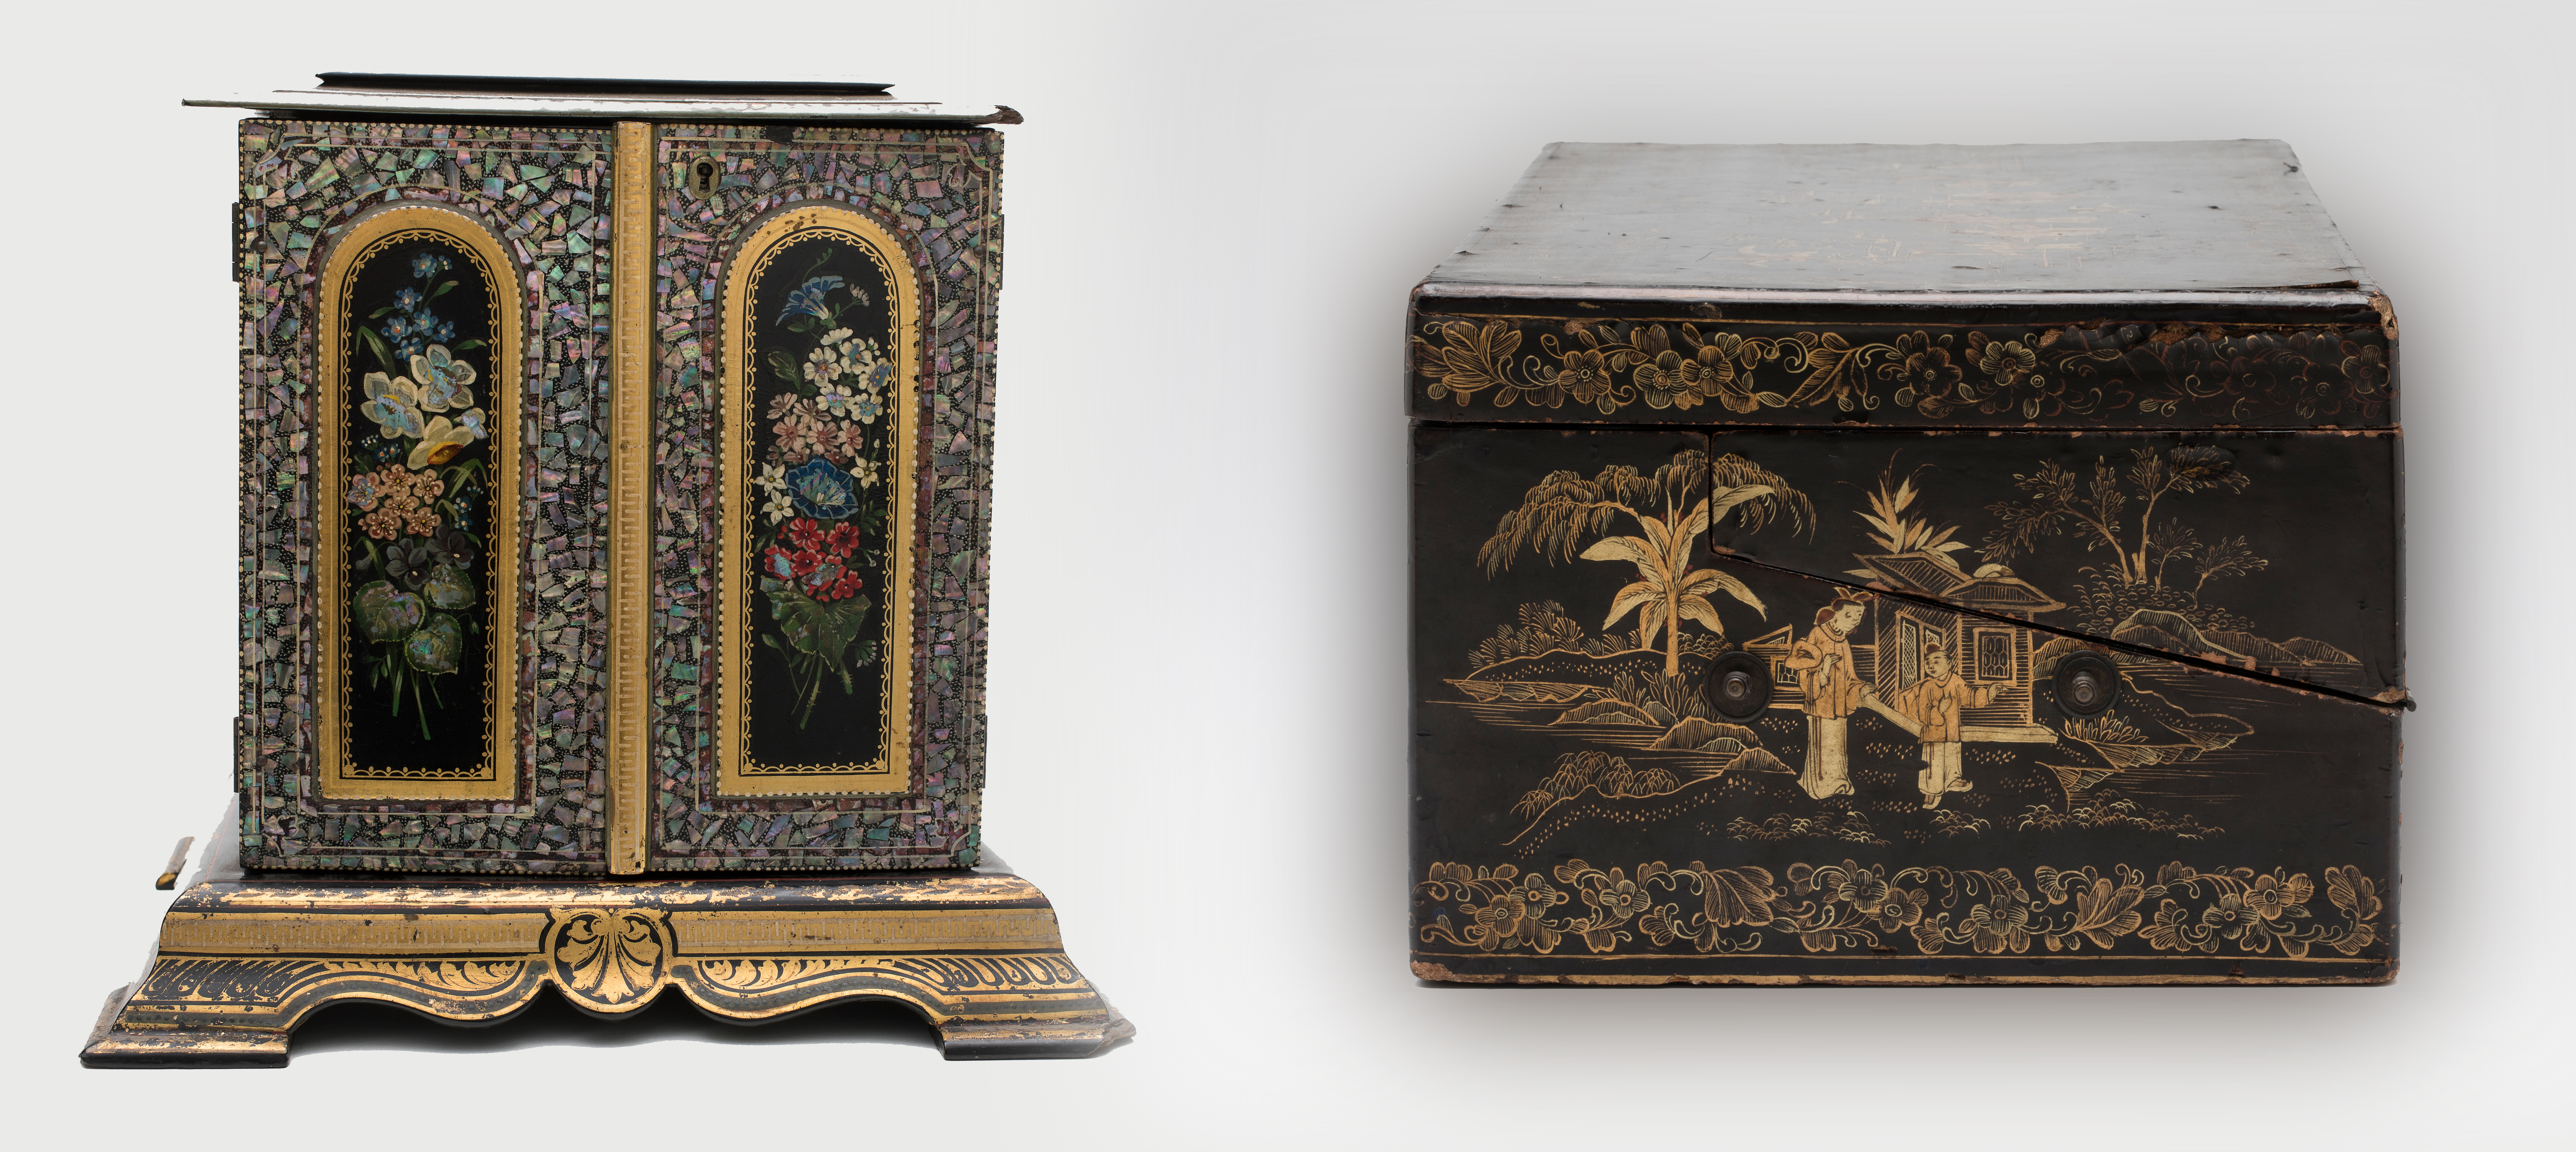 Two object images showing European made jaappned cabinet and Chinese made lacquer writing box.